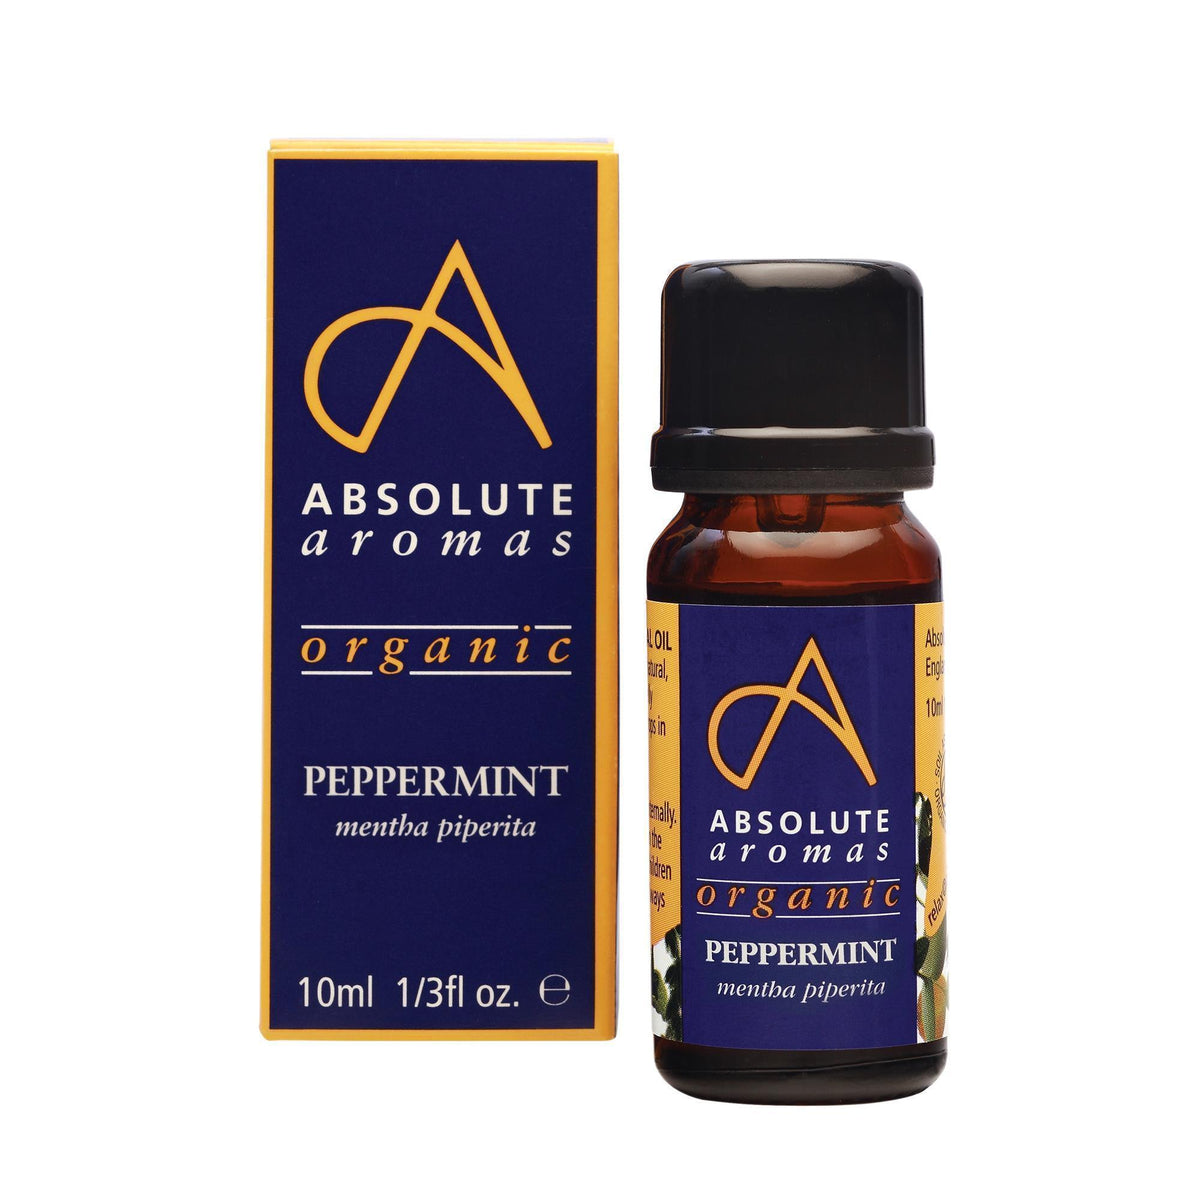 Absolute Aromas Organic Peppermint Essential Oil 0.33 Fl. Oz.